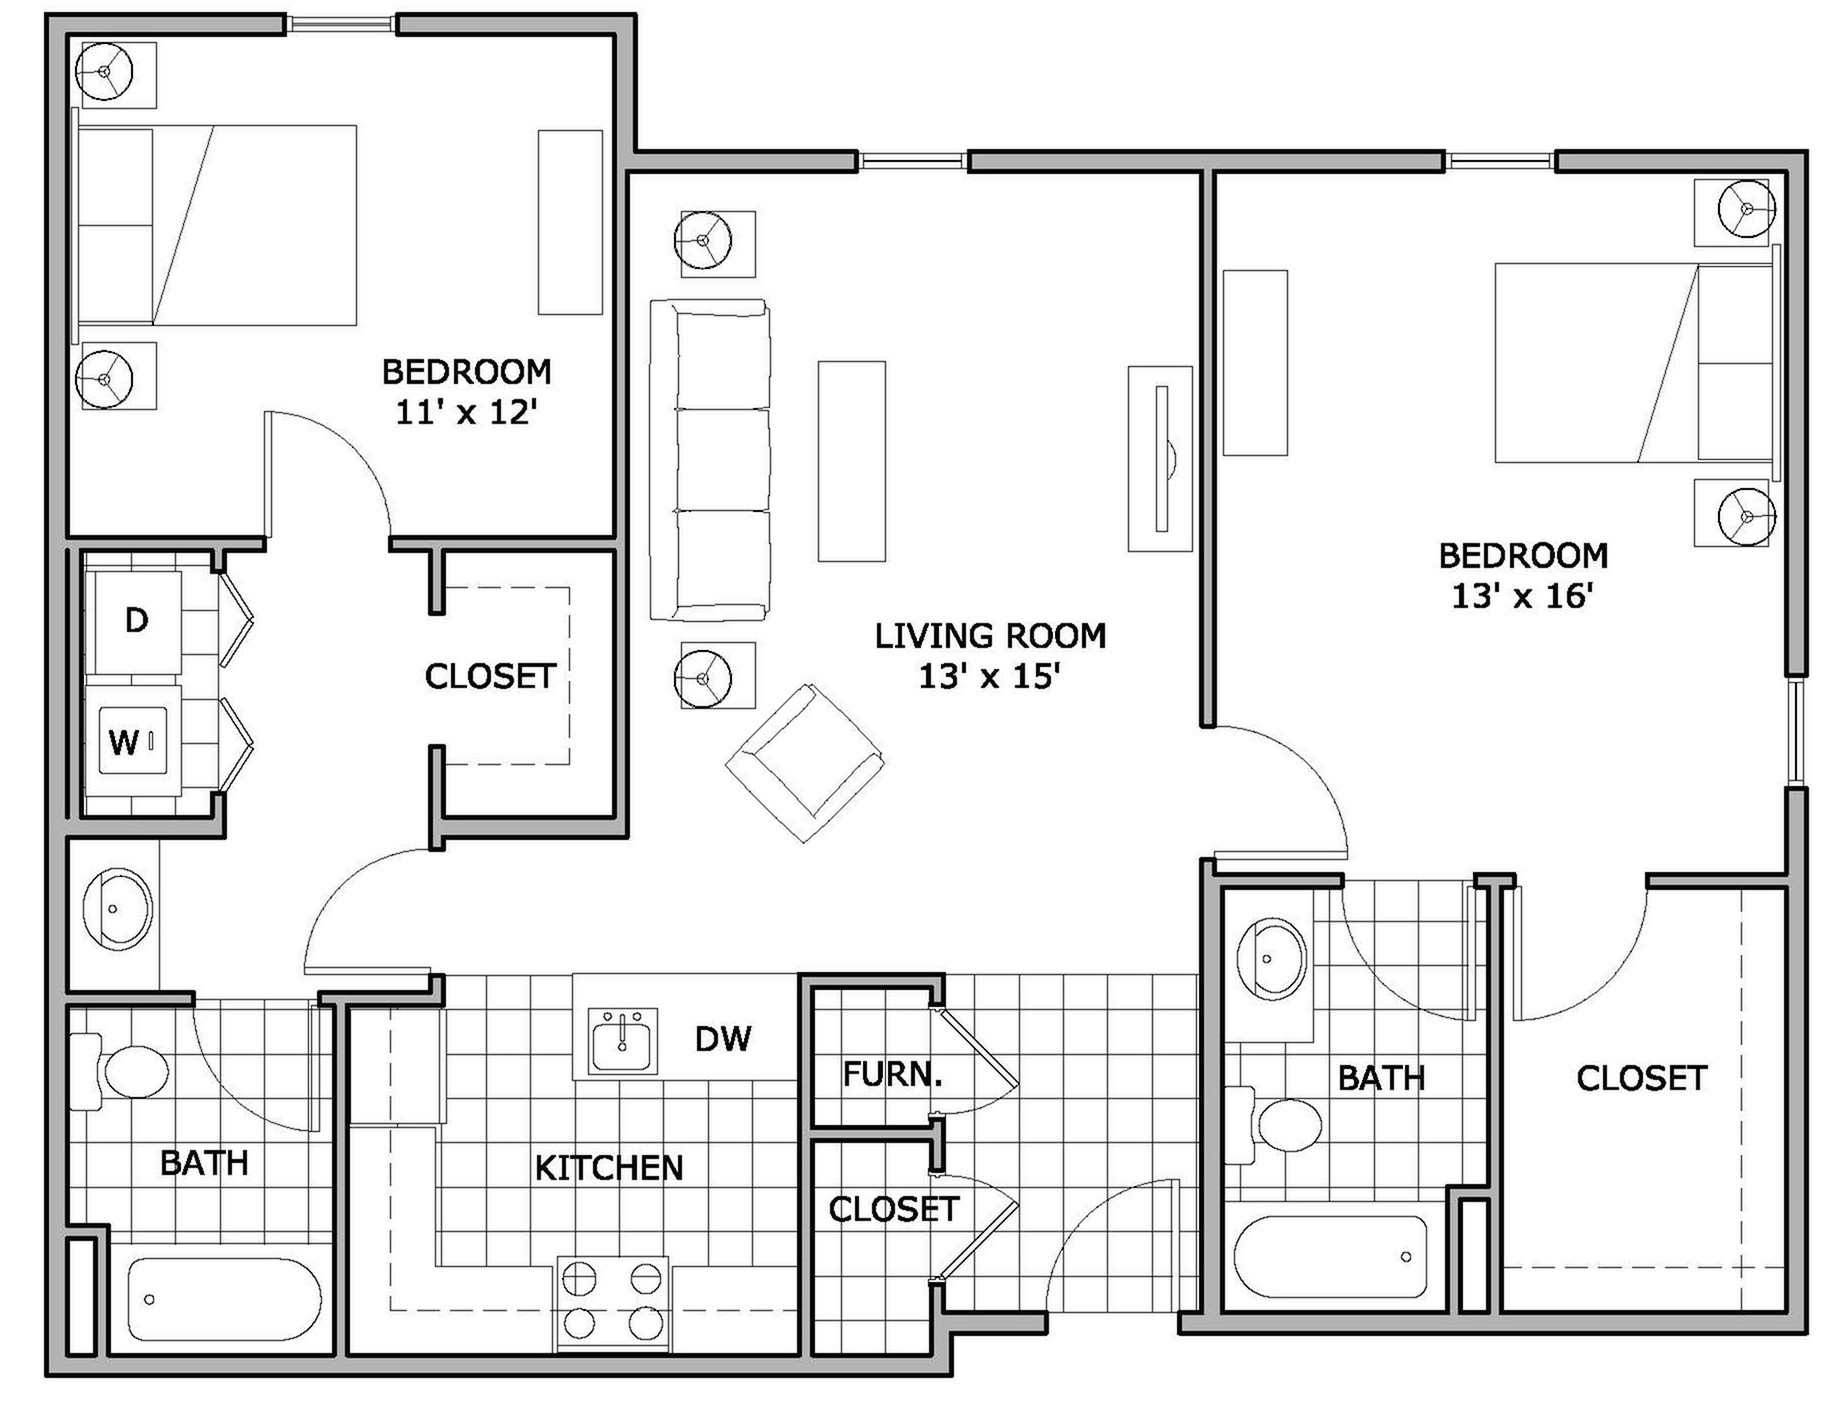 Breathtaking Luxury Two Bedroom Apartment Floor Plans Pictures ...